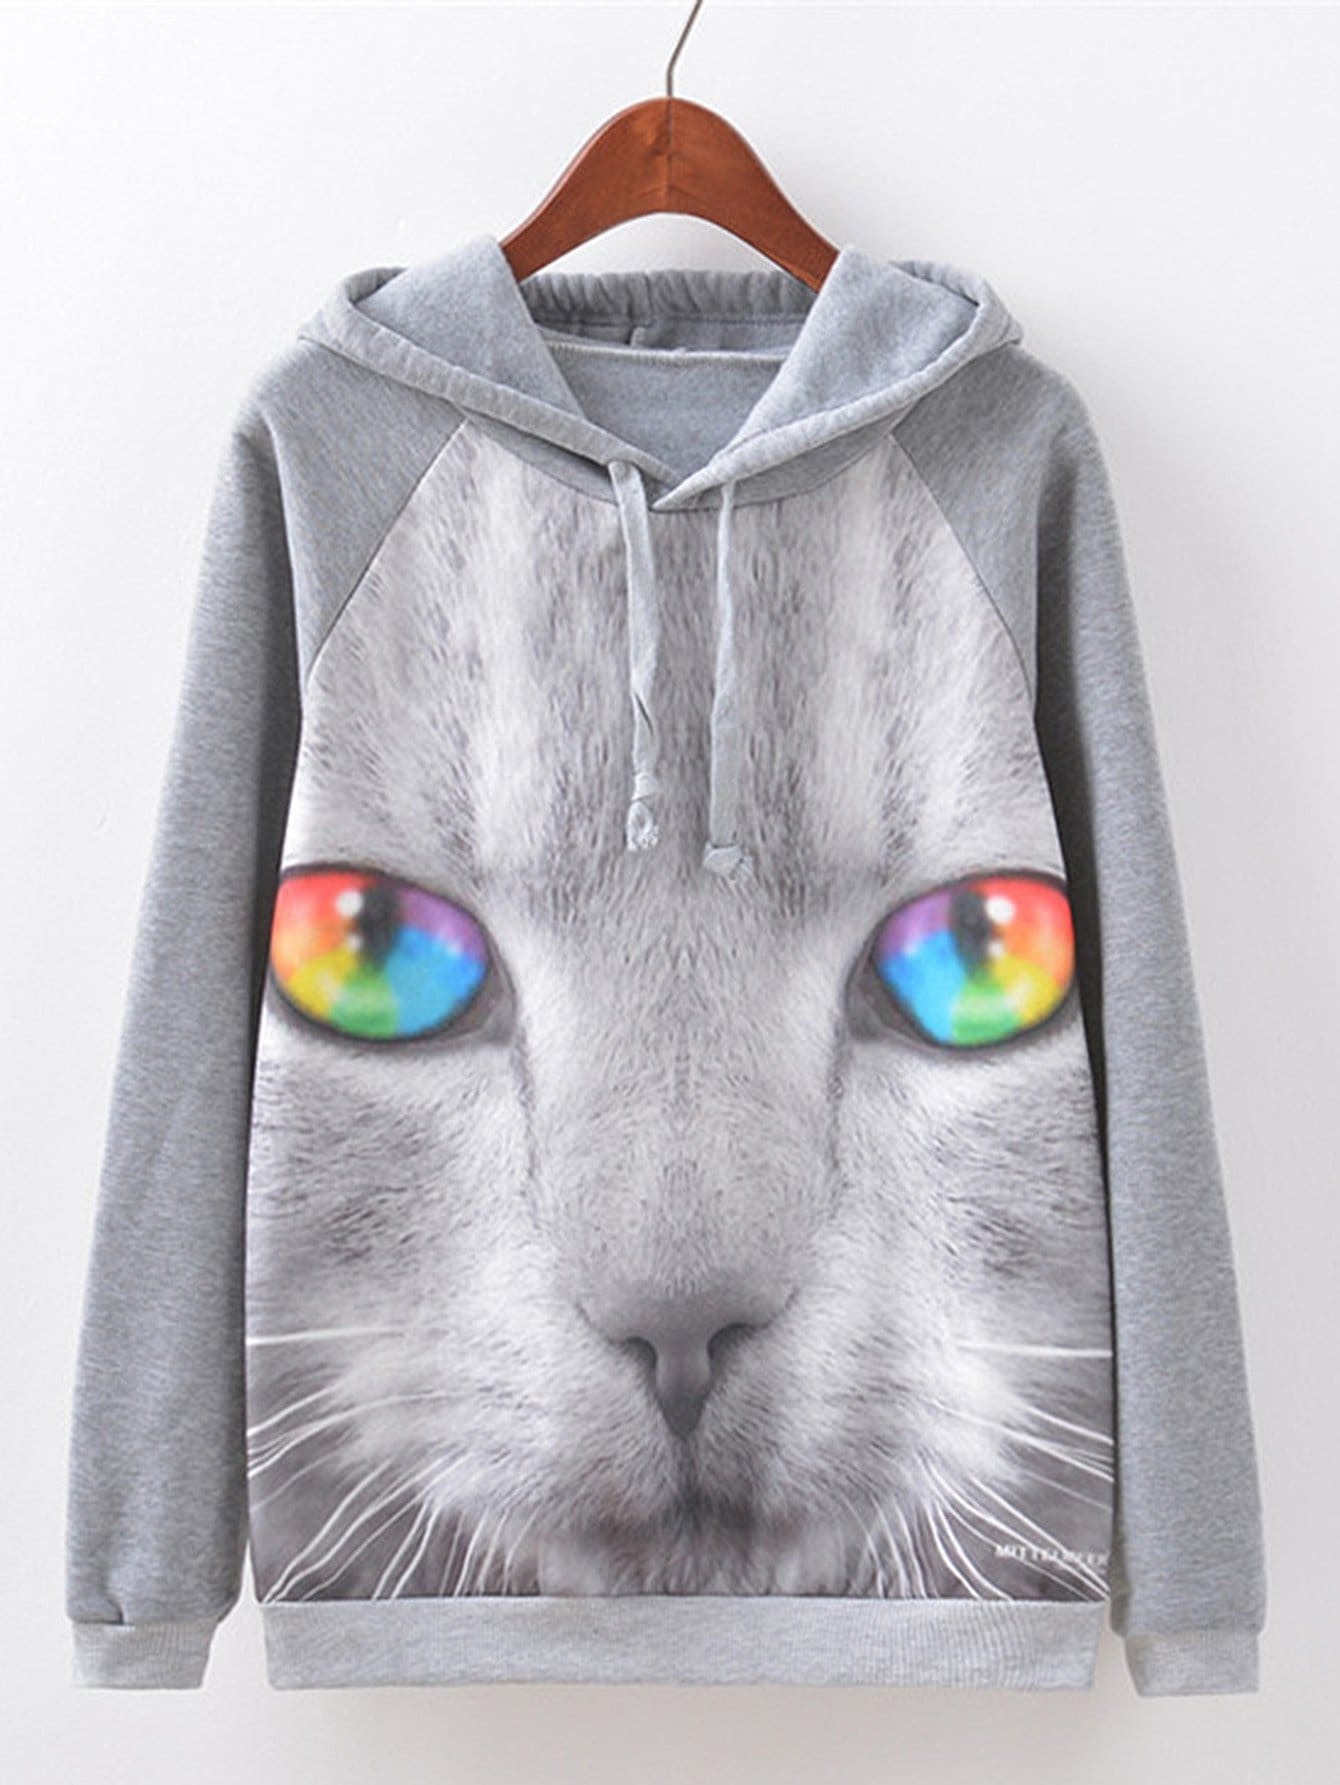 Color-Eye Cat Print Hoodie cat eye glasses tinize 2015 tr90 5832